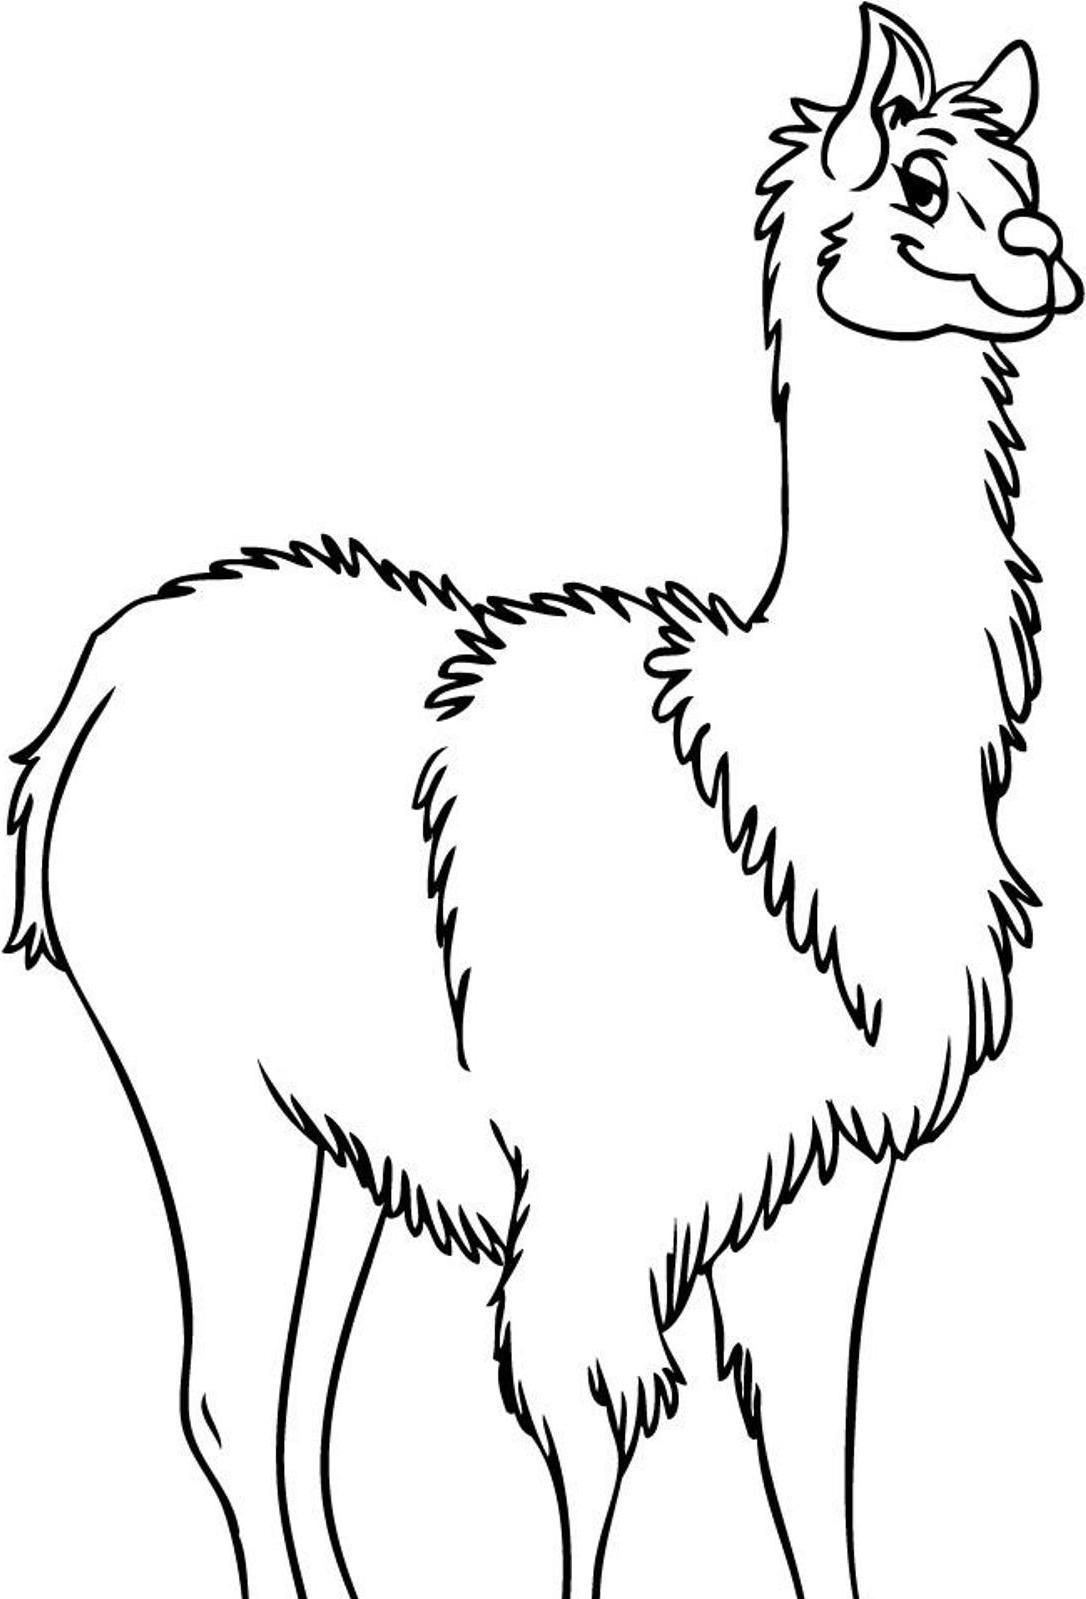 coloring pages llamas - photo#22